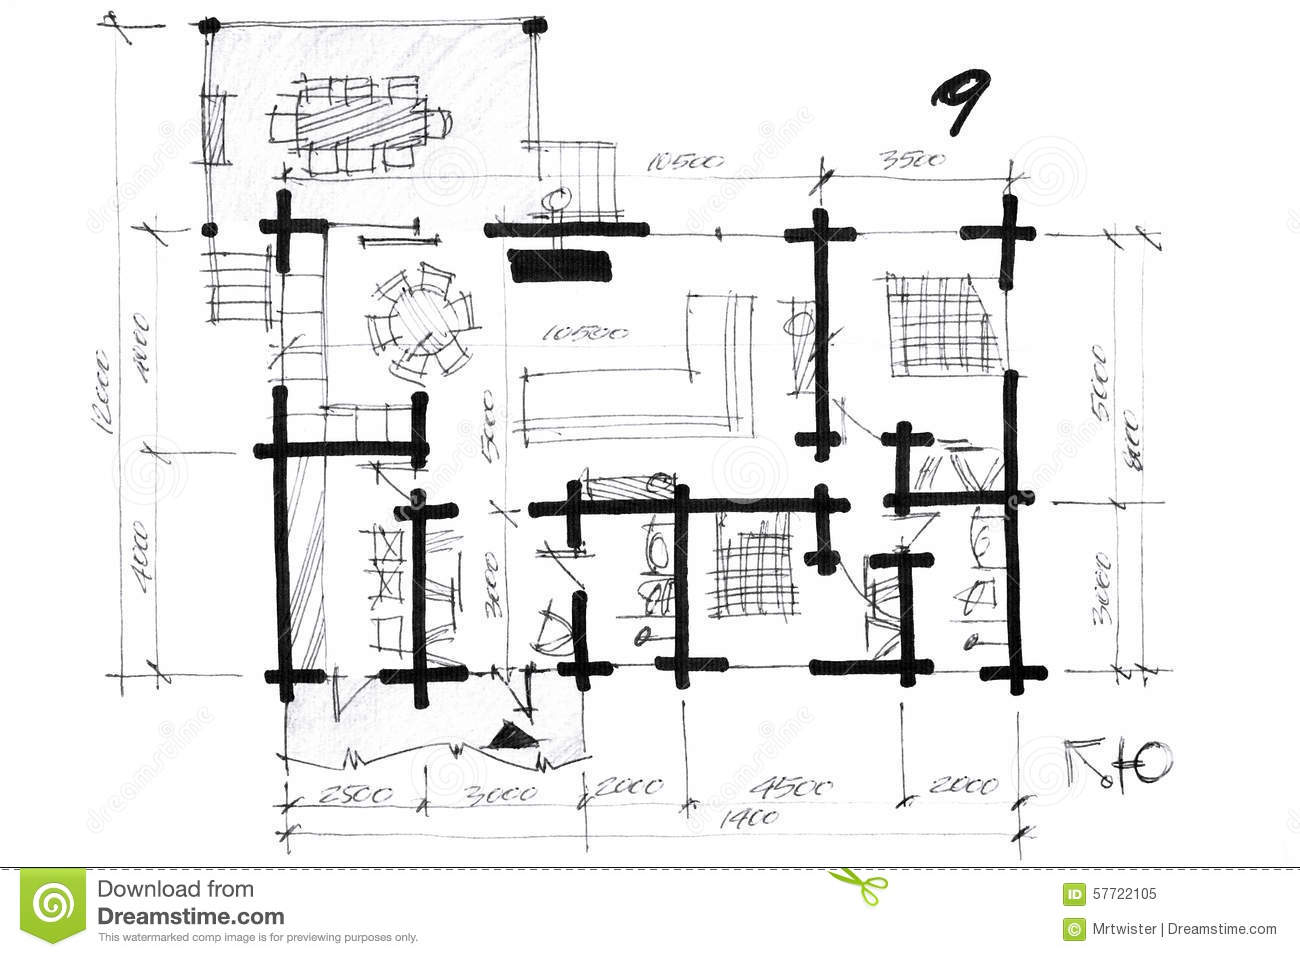 House layout sketch